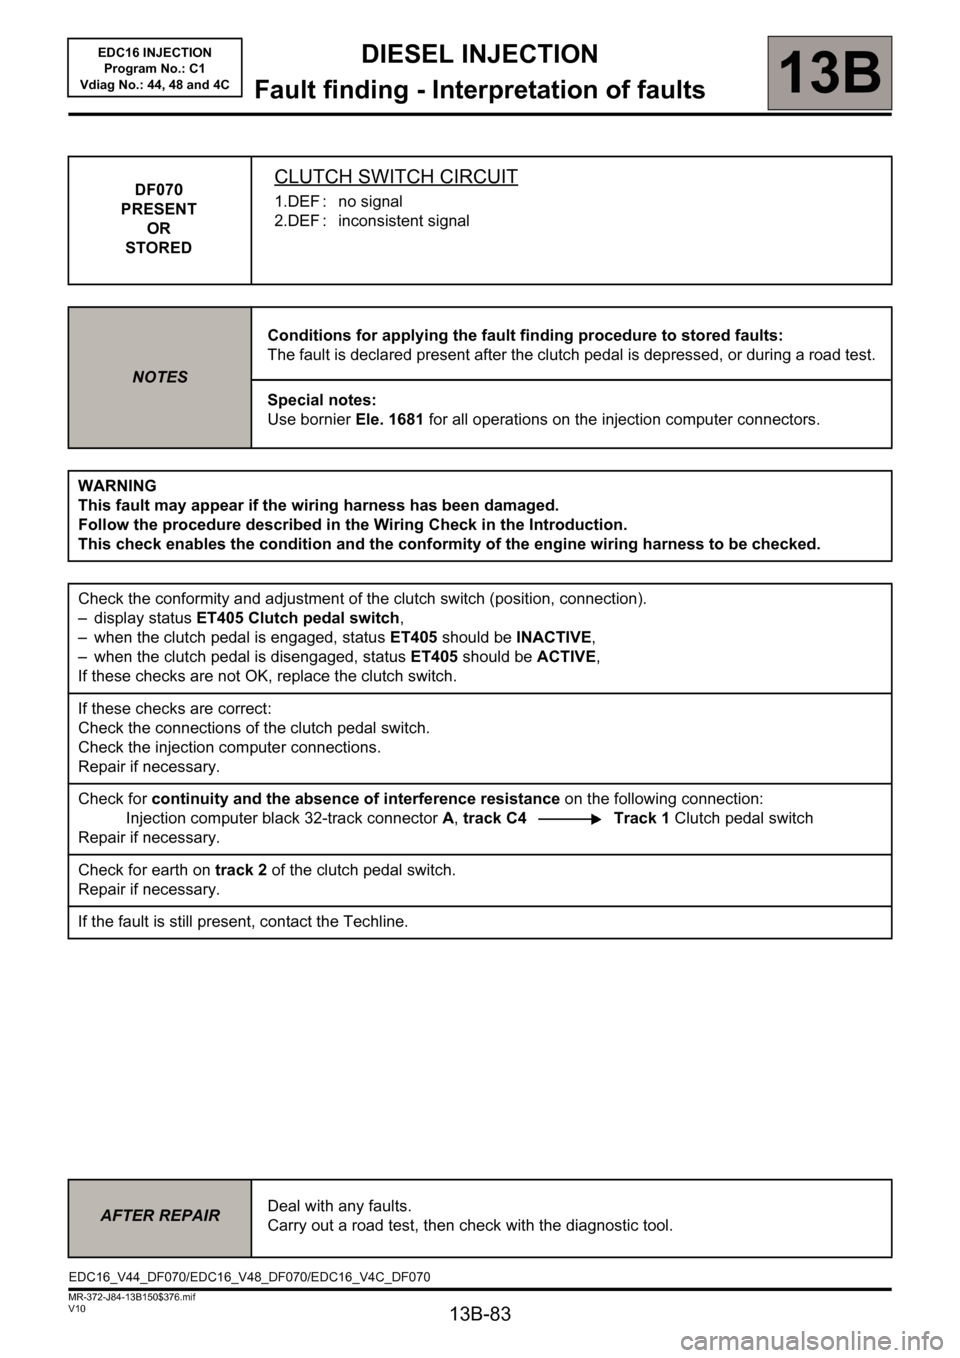 RENAULT SCENIC 2011 J95 / 3.G Engine And Peripherals EDC16 Injection Workshop Manual, Page 83